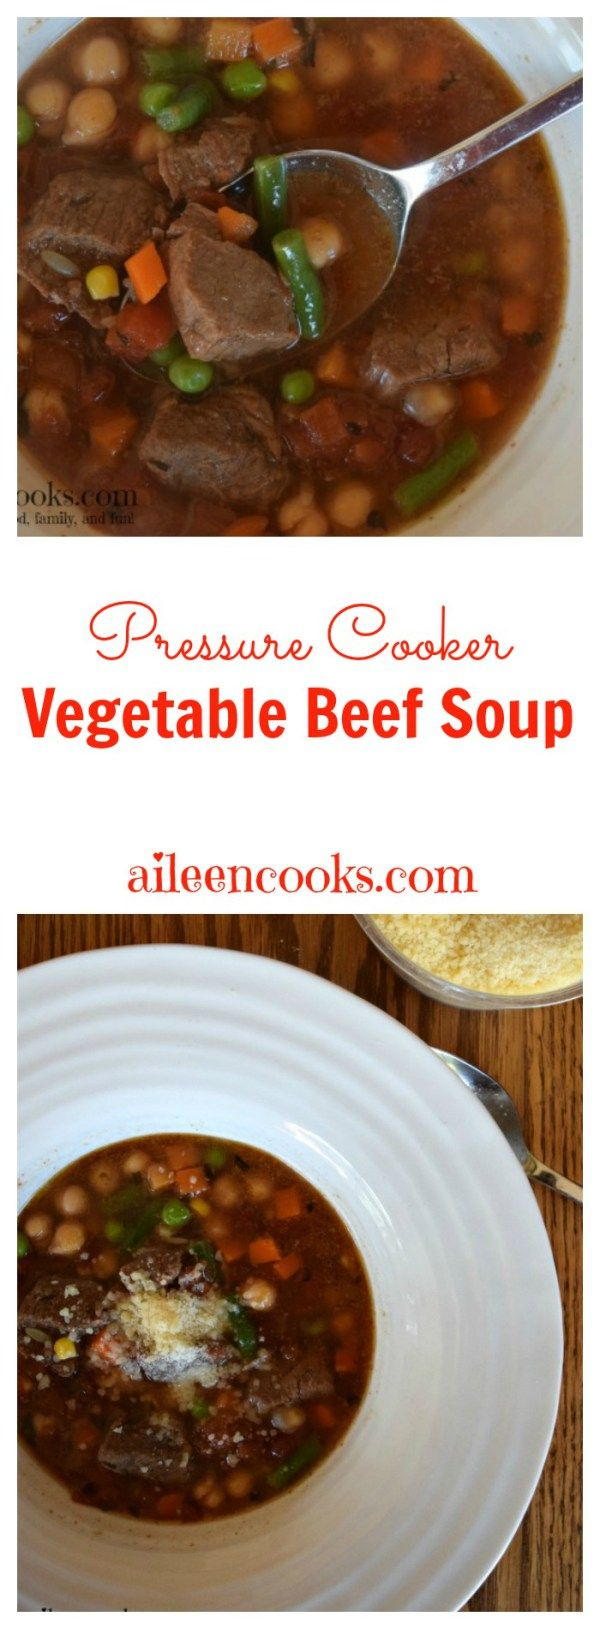 Pressure Cooker Vegetable Beef Stew is a healthy instant pot recipe made with tender beef and vegetables. Recipe from aileencooks.com. Pressure Cooker recipes. Instant Pot Vegetable Beef Soup. Instant Pot Recipes. #beefuptheholidays #ad